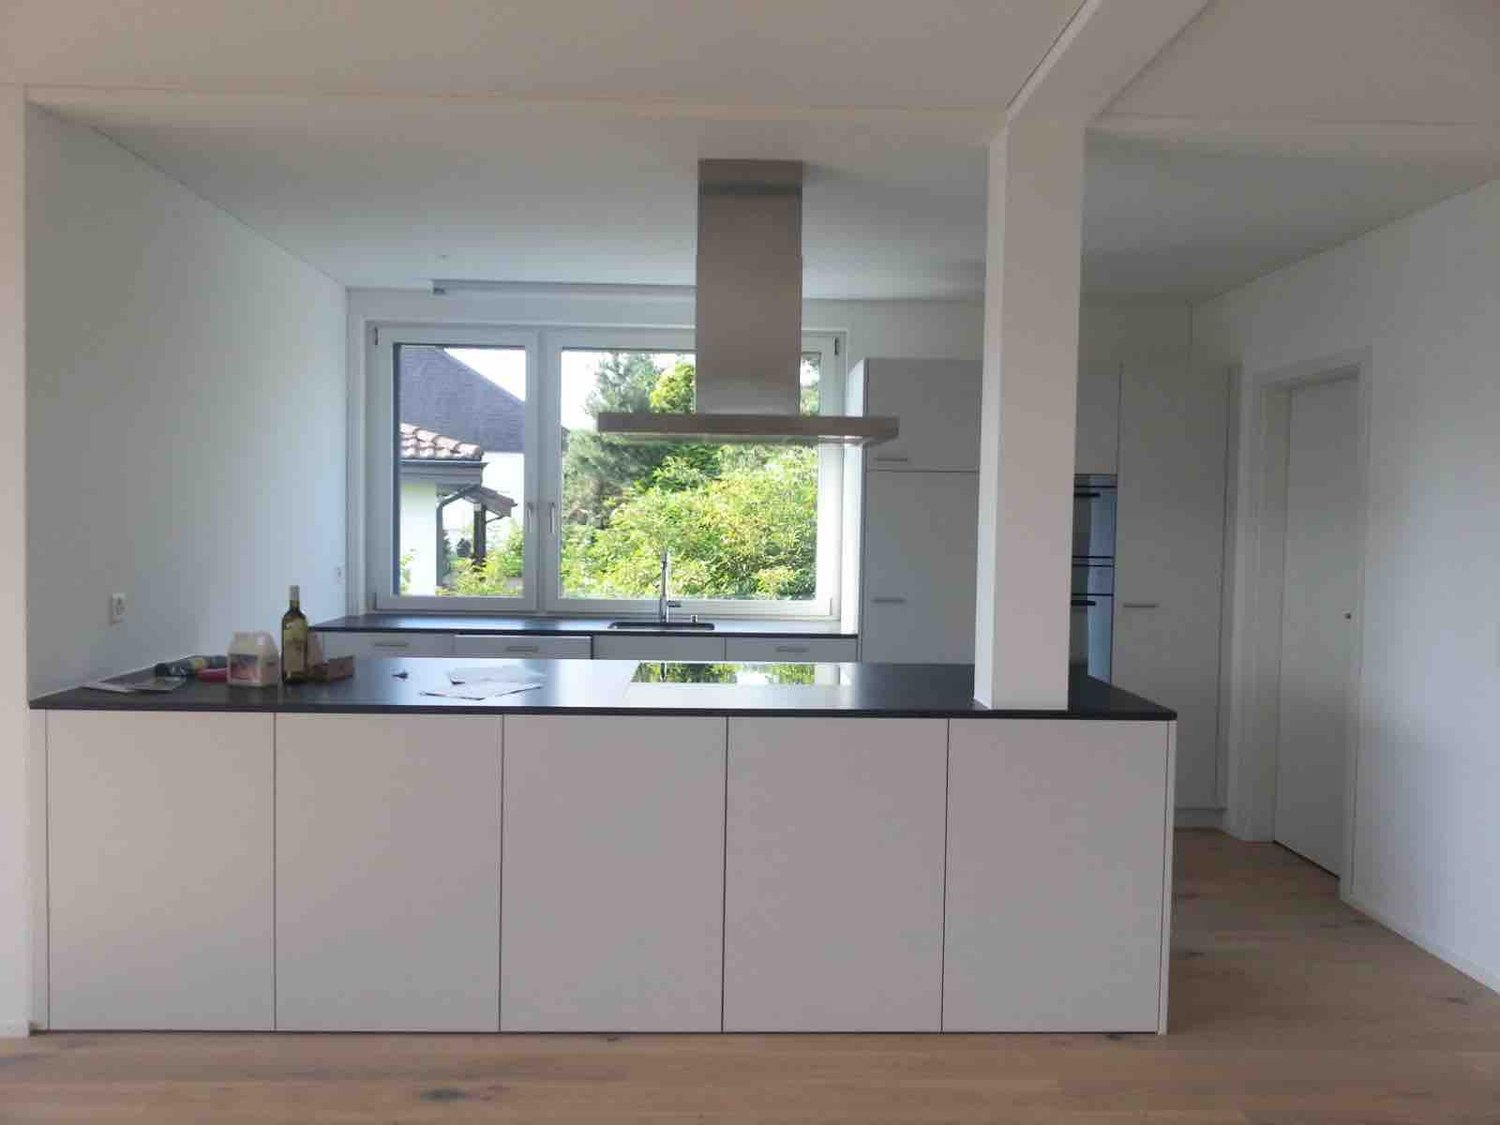 Bijoux An Toplage In Uster Uster Rent Apartment Homegate Ch